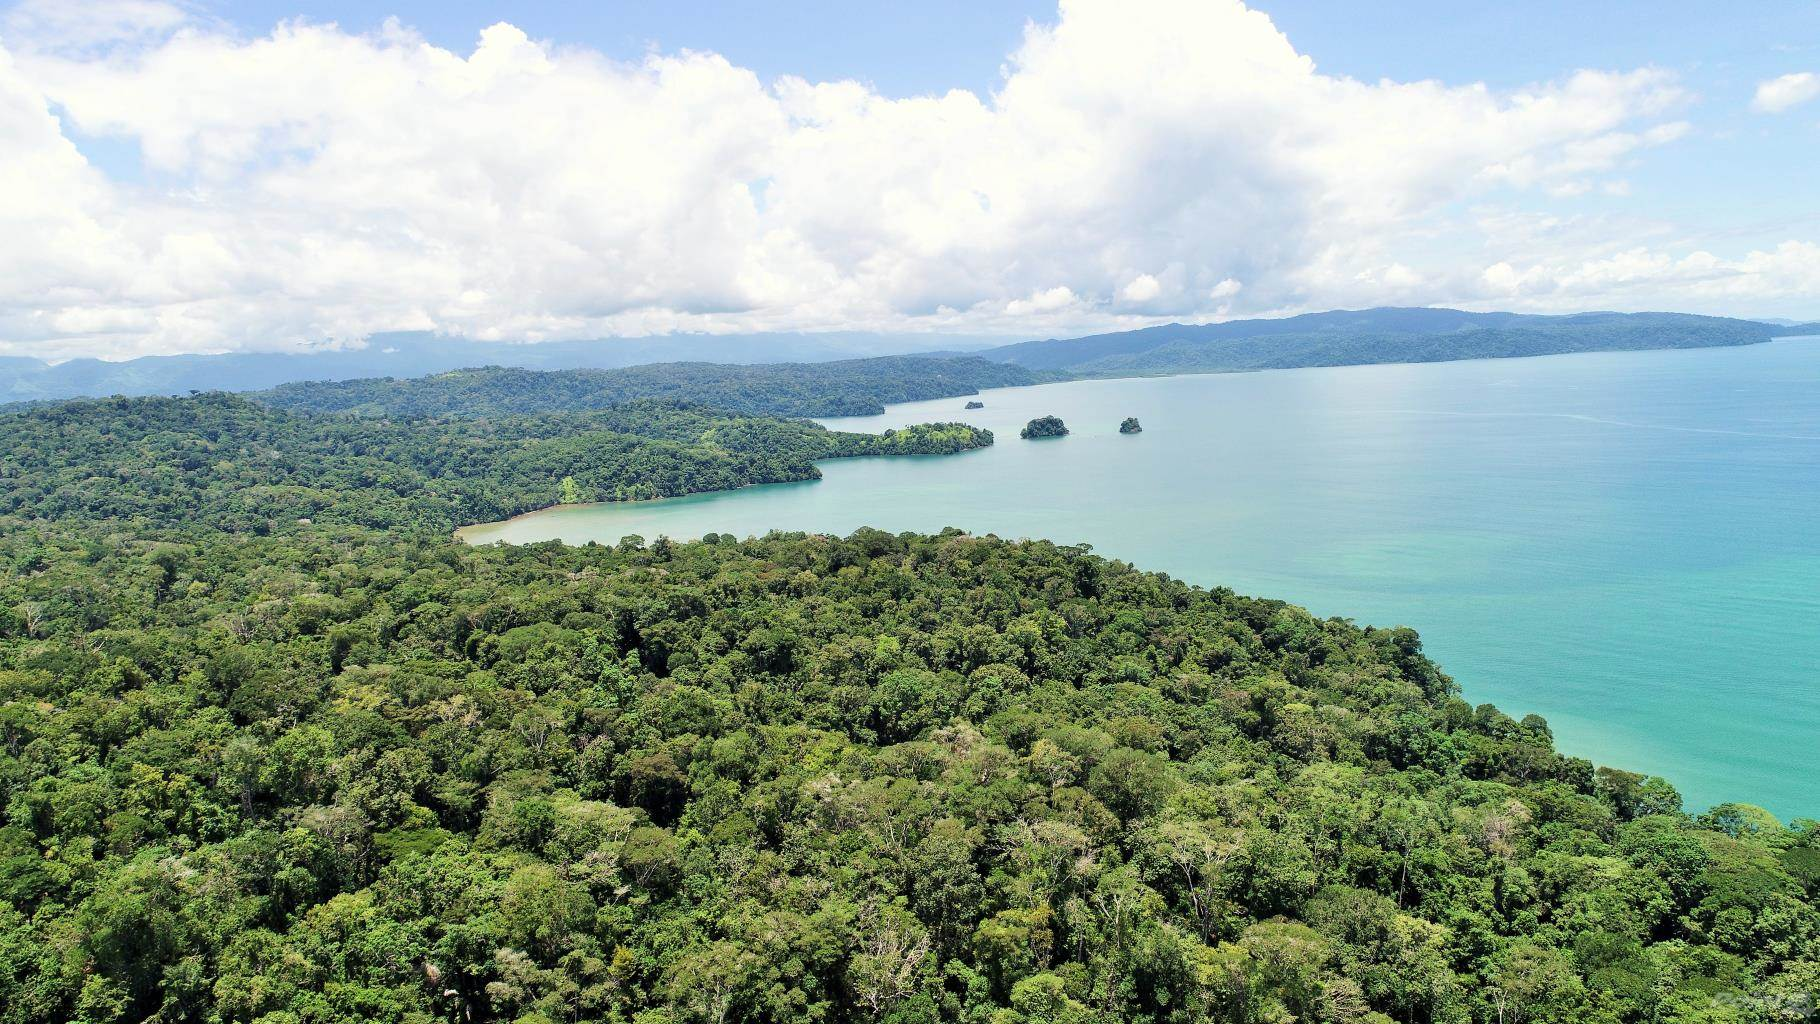 Farms & Ranches for sale in Amazing Development Property Located in Piedras Blancas - 169 Acres, Osa, Puntarenas ,60504  , Costa Rica